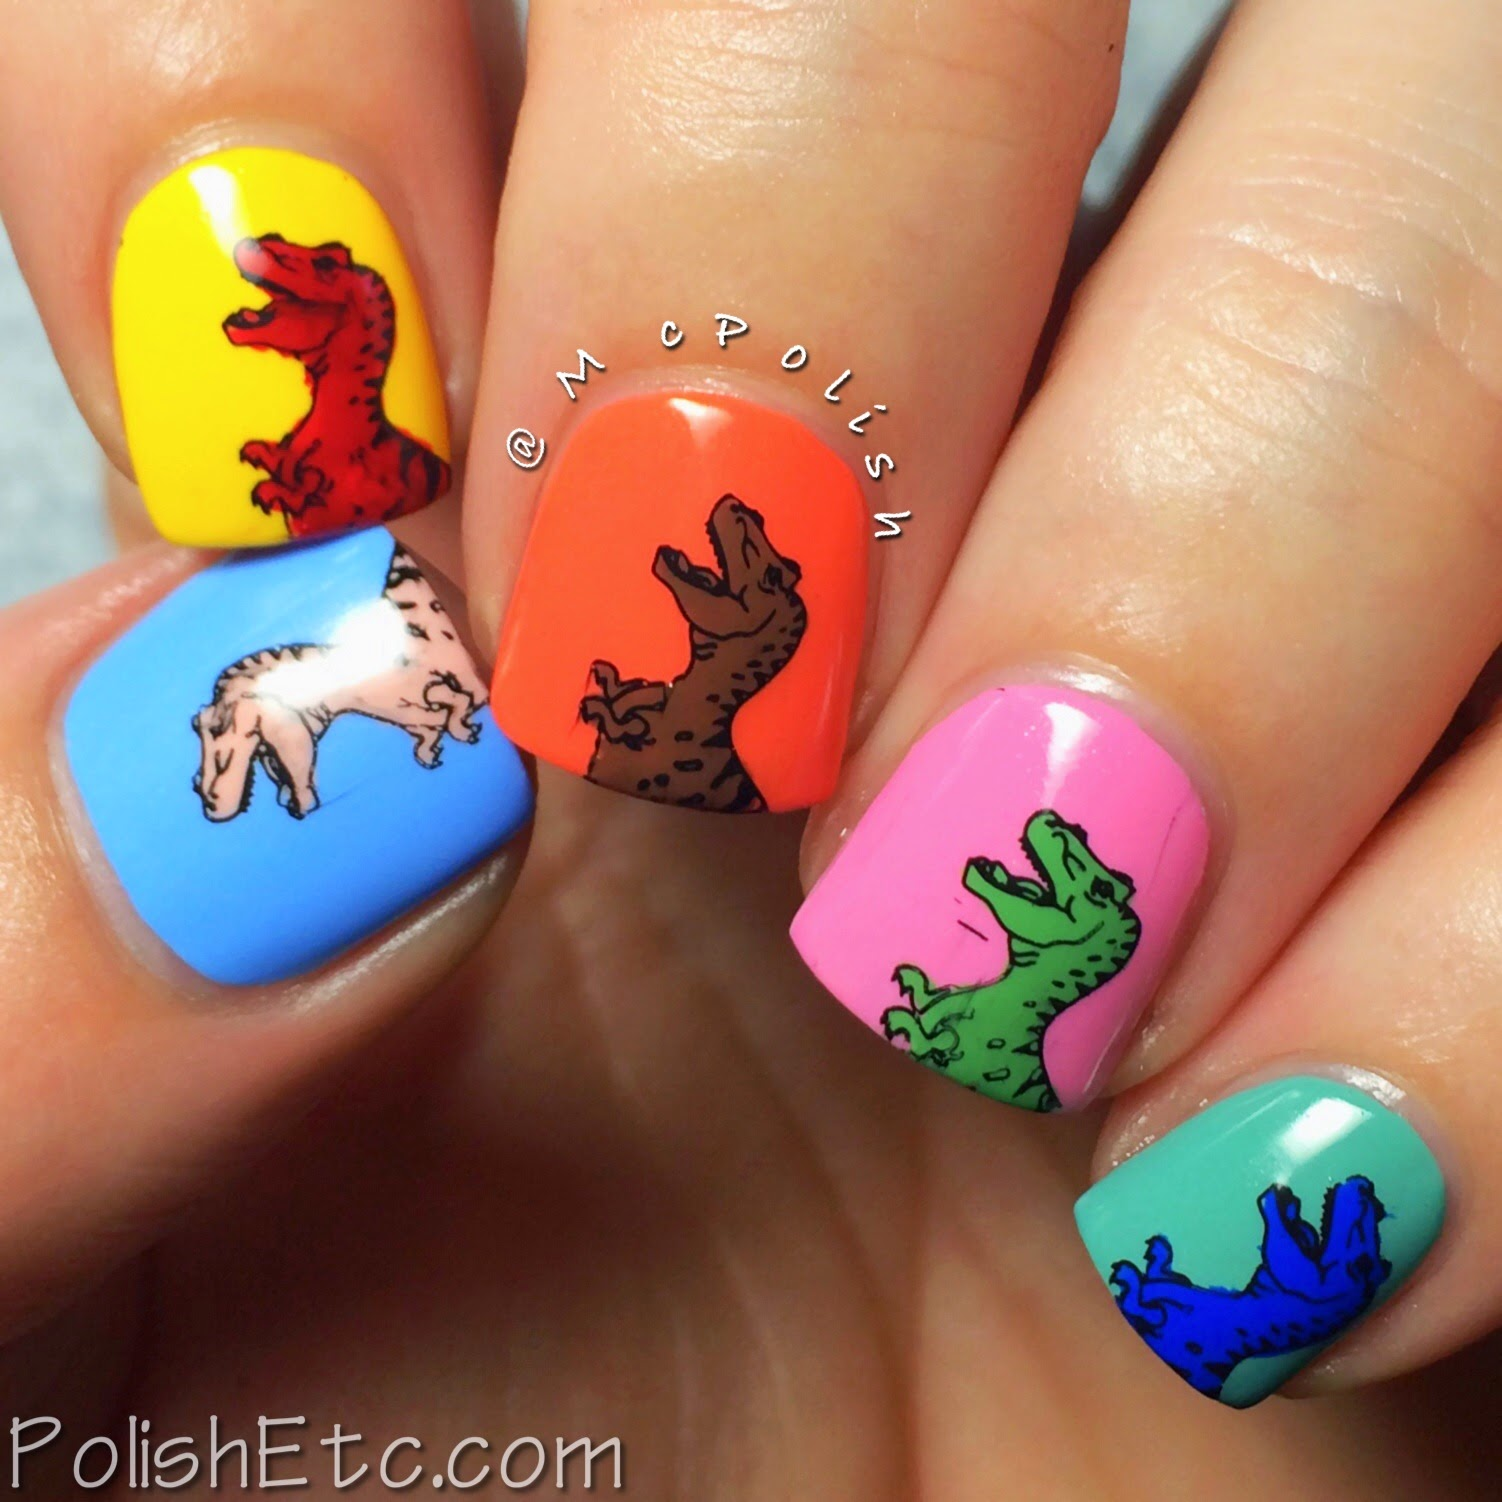 31 Day Nail Art Challenge -#31dc2014 - McPolish - ARTWORK